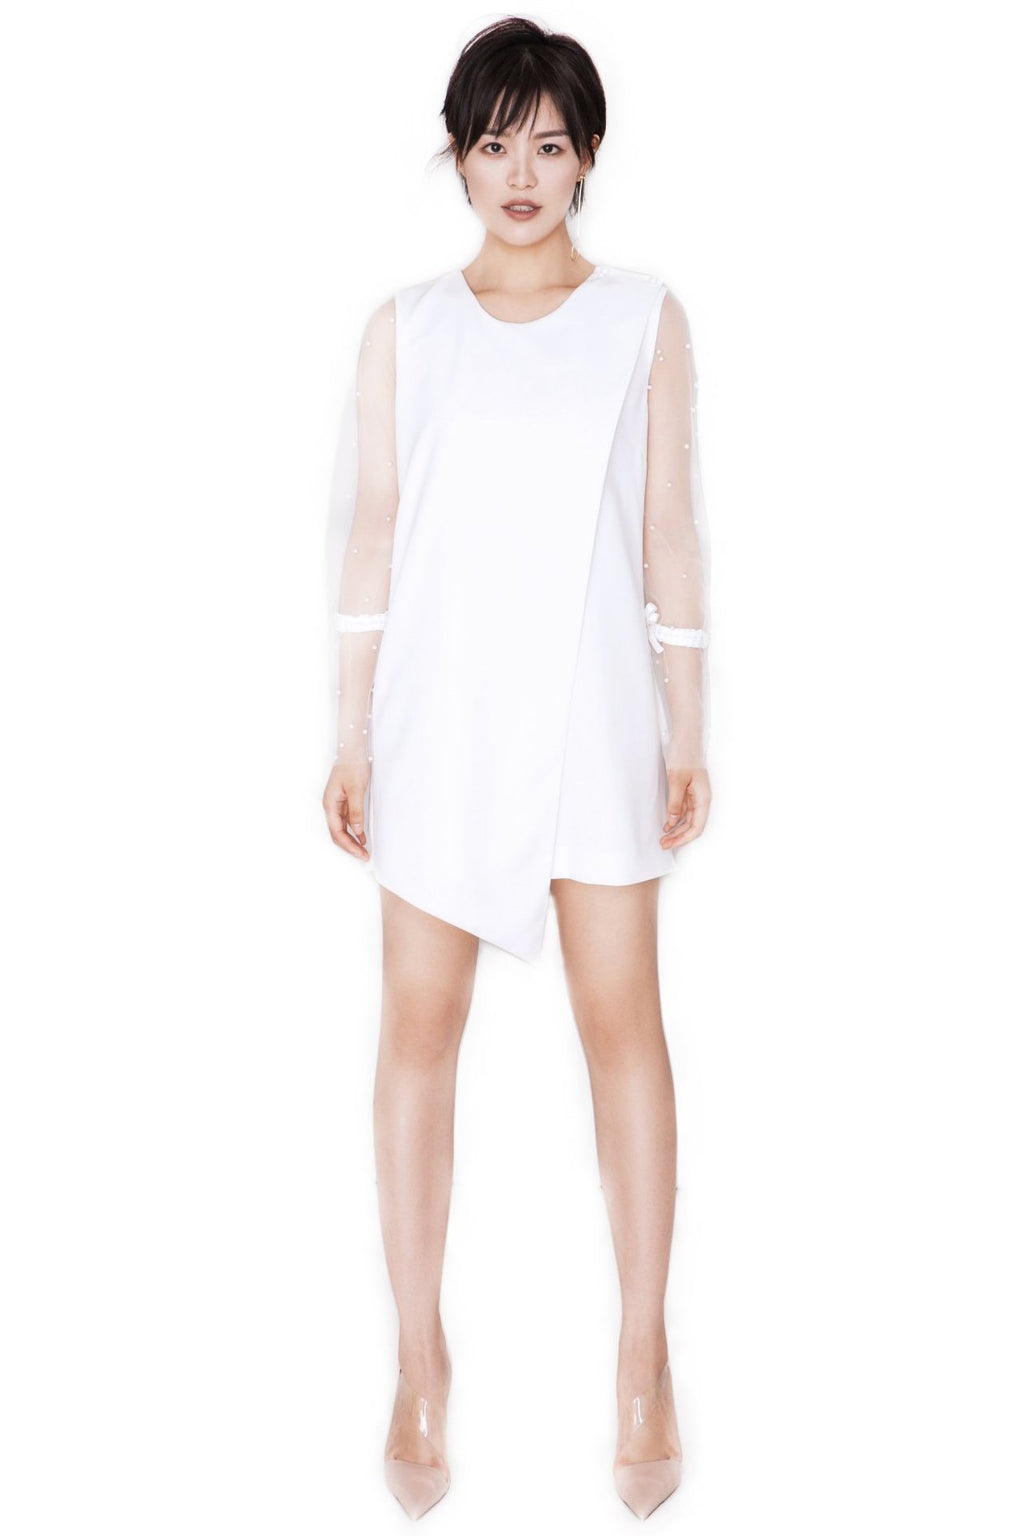 FEVER WANG white pearl-voile dress